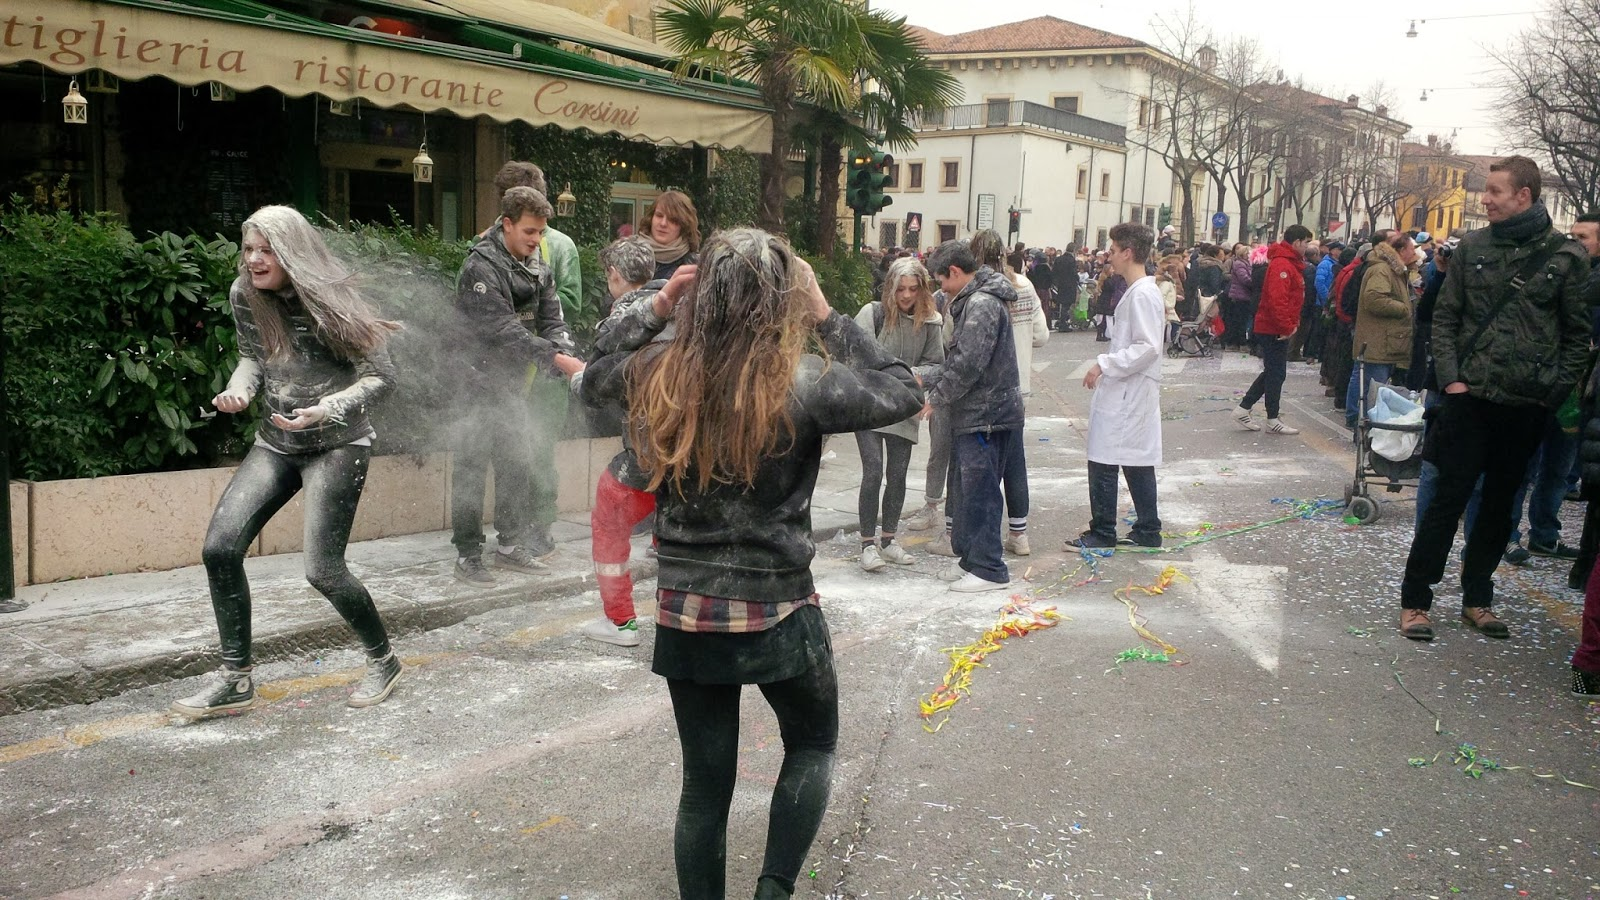 Teenagers throwing flour at each other, Verona Carnival 2015, Verona, Veneto, Italy